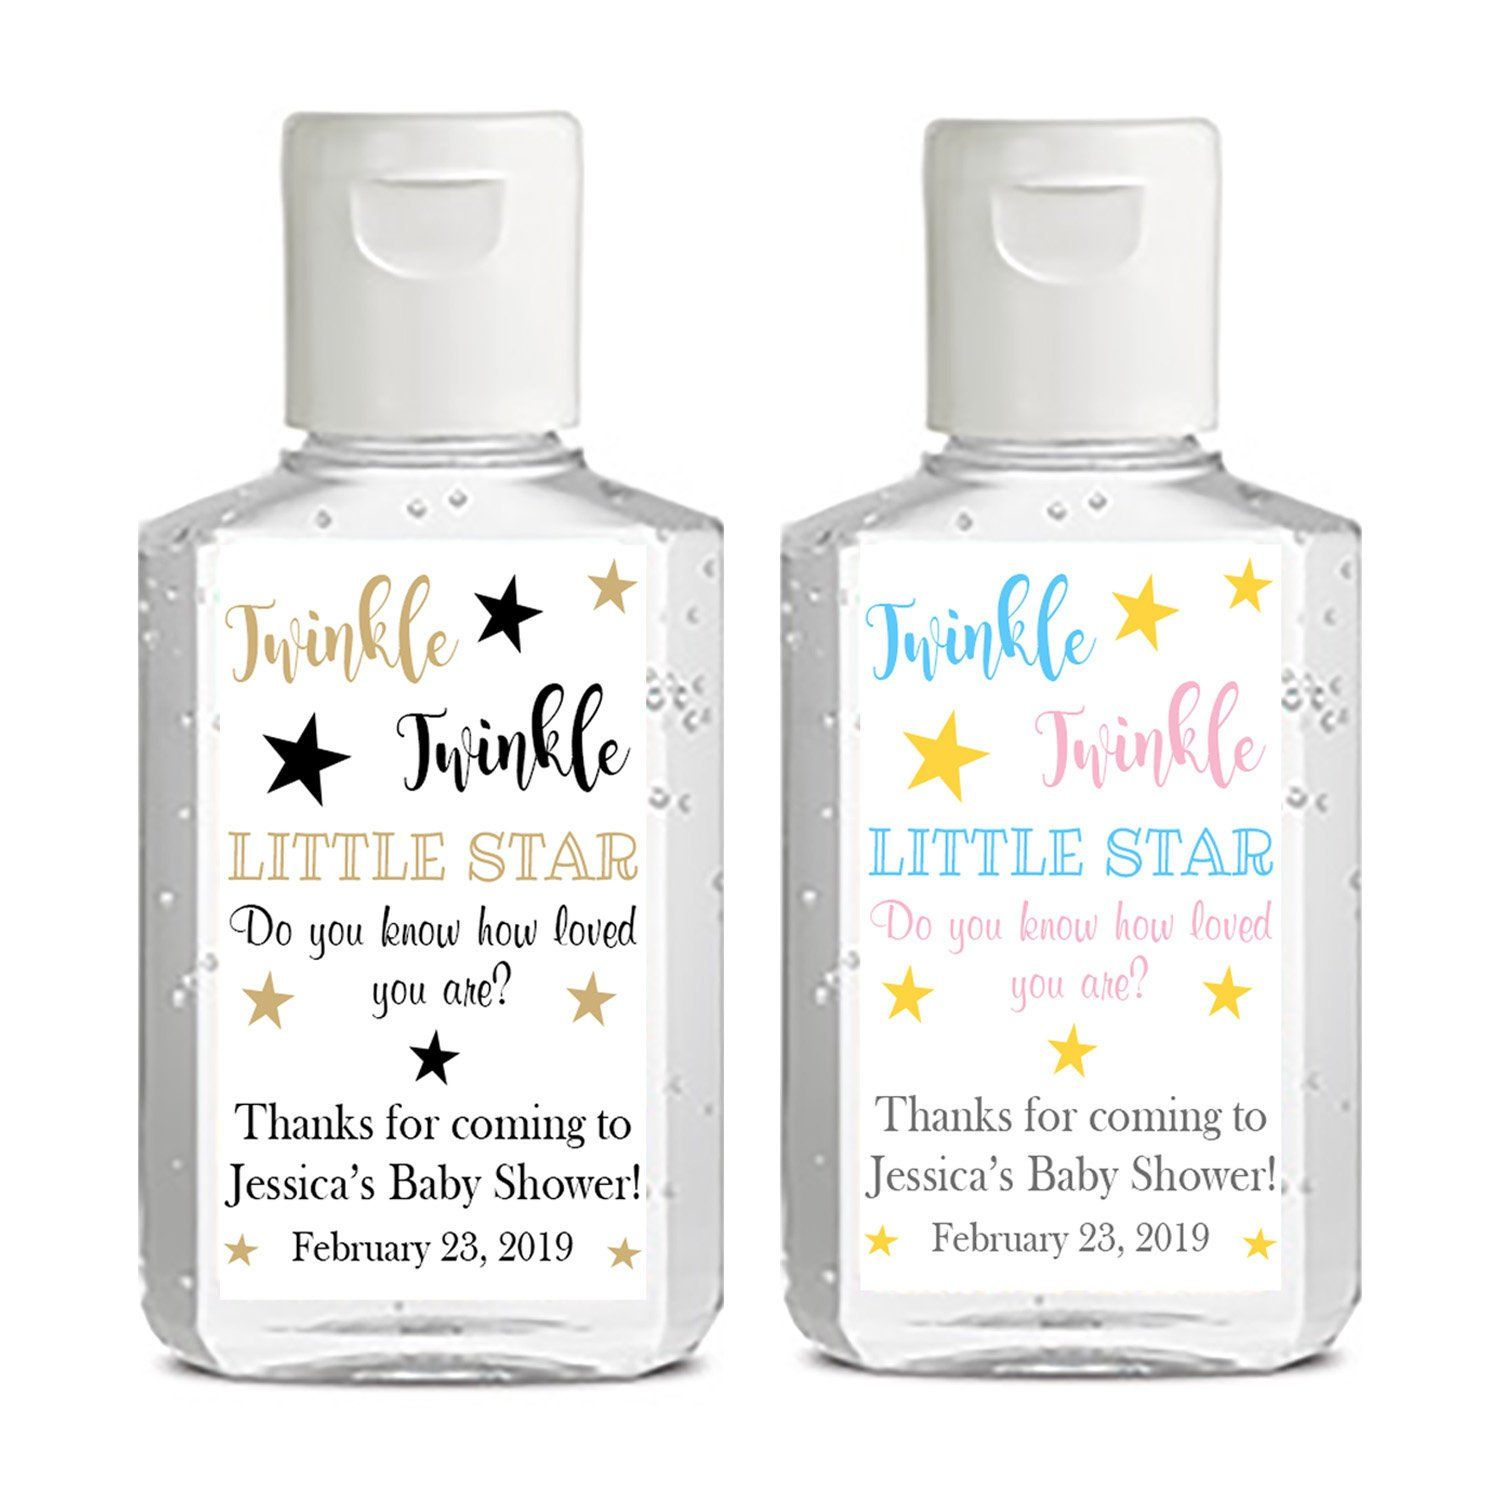 Twinkle Twinkle Baby Shower Hand Sanitizer Label Personalized